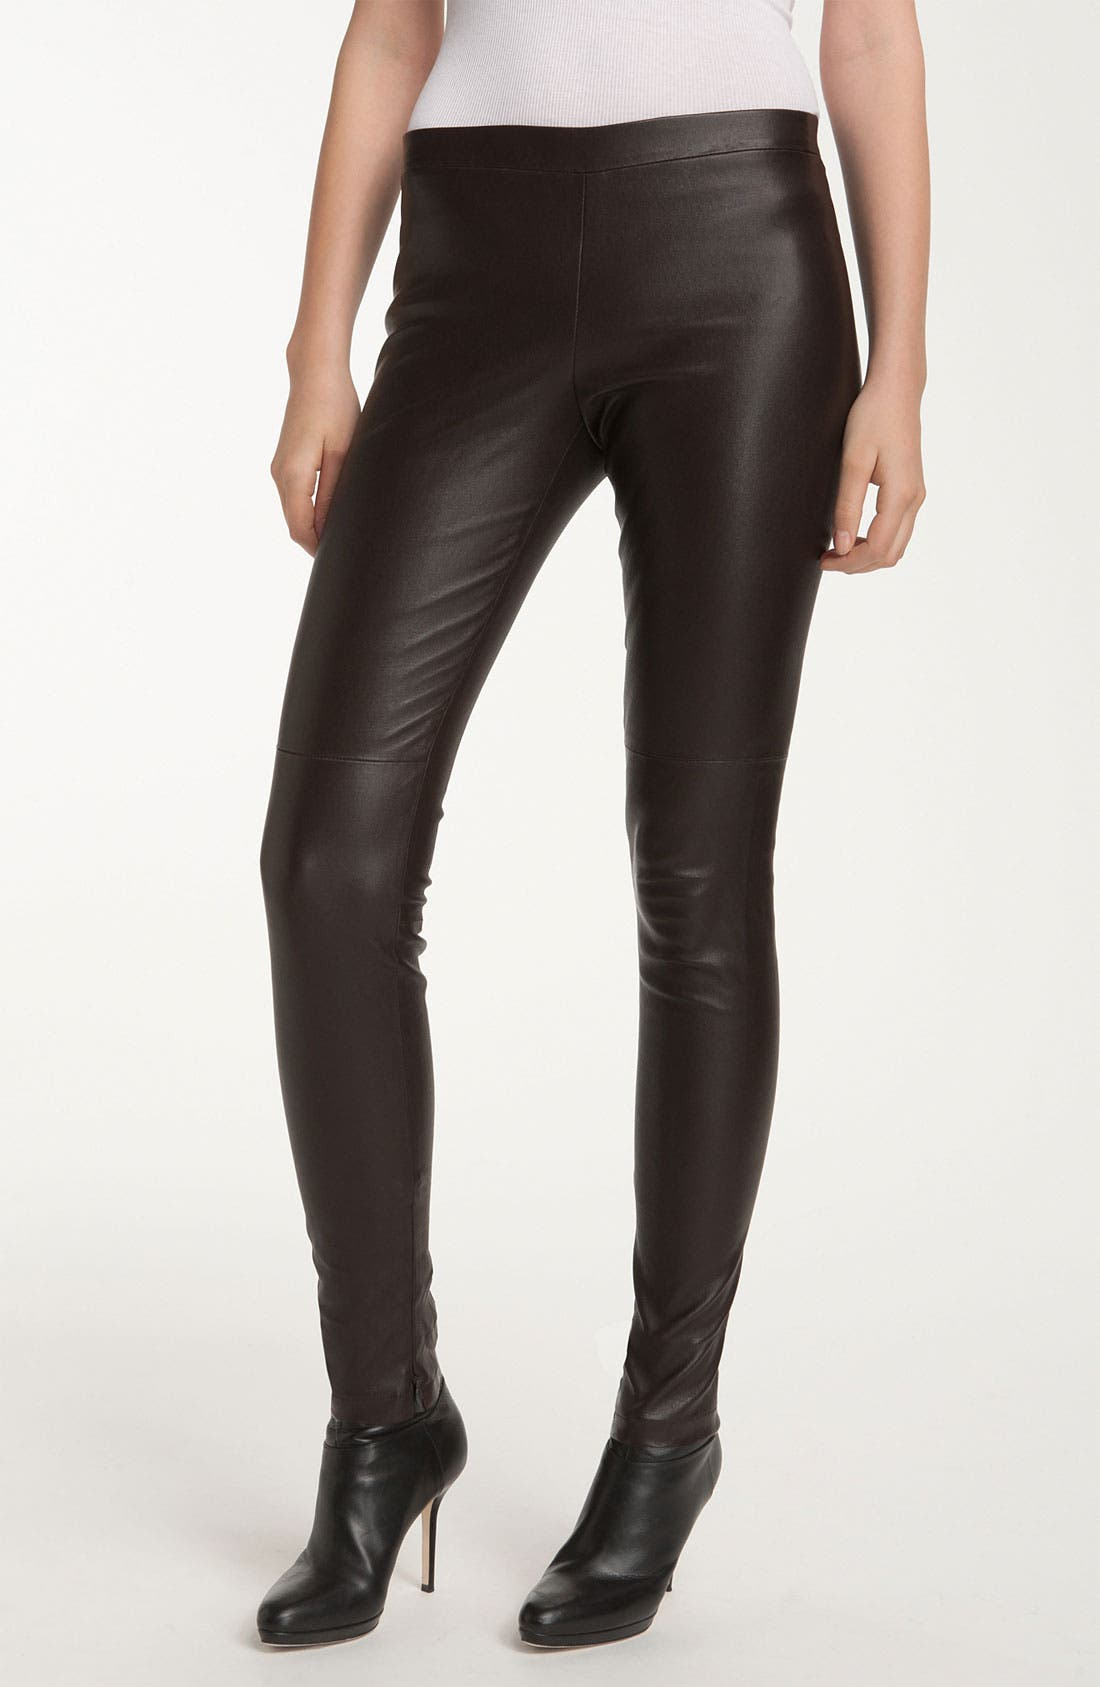 Alternate Image 1 Selected - Vince Ankle Zip Leather Legging